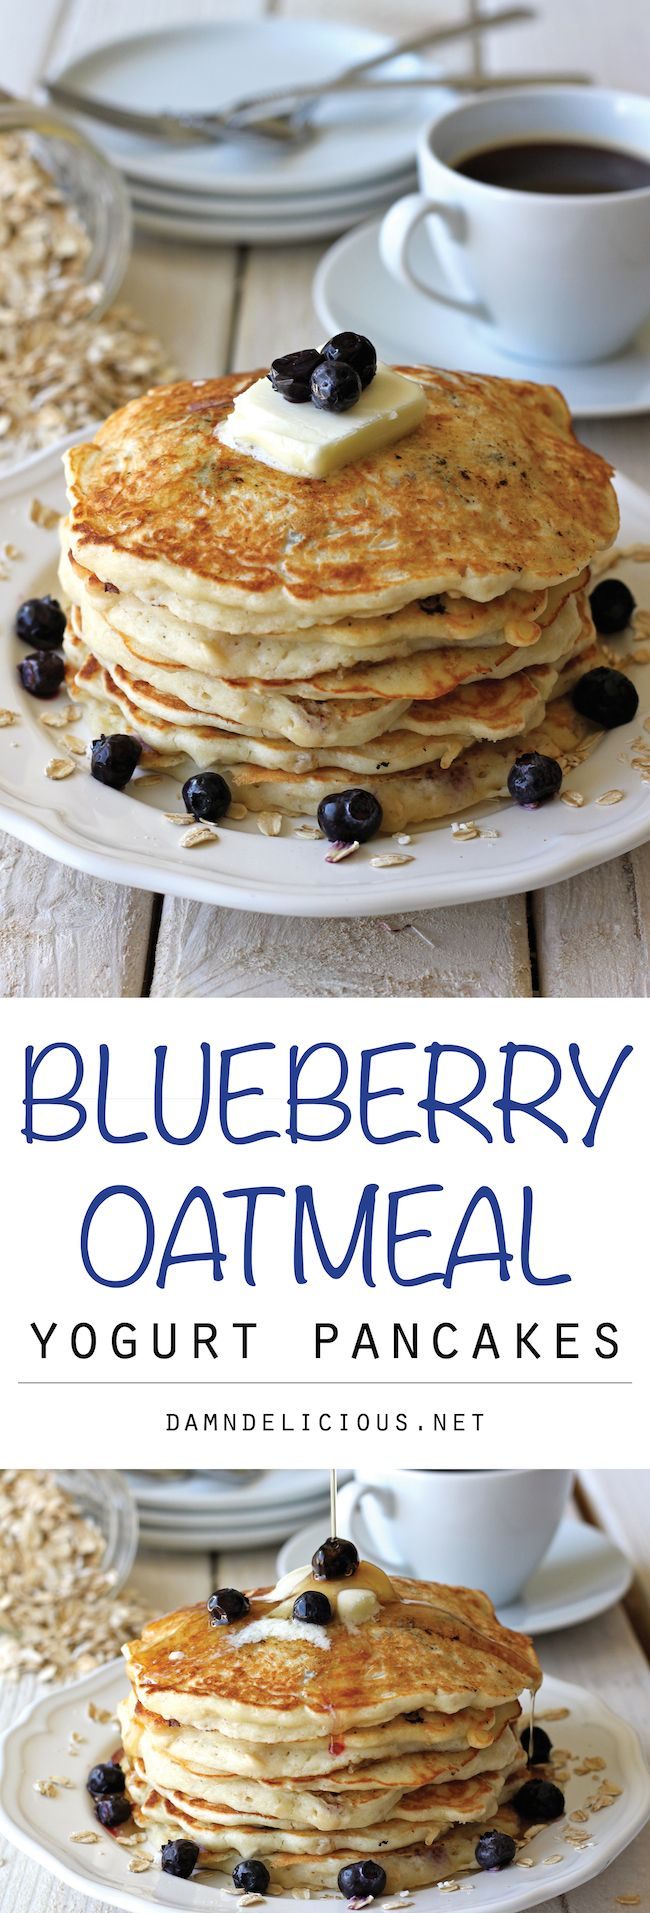 Start your mornings off right with these light and fluffy, healthy pancakes chockfull of juicy blueberries!